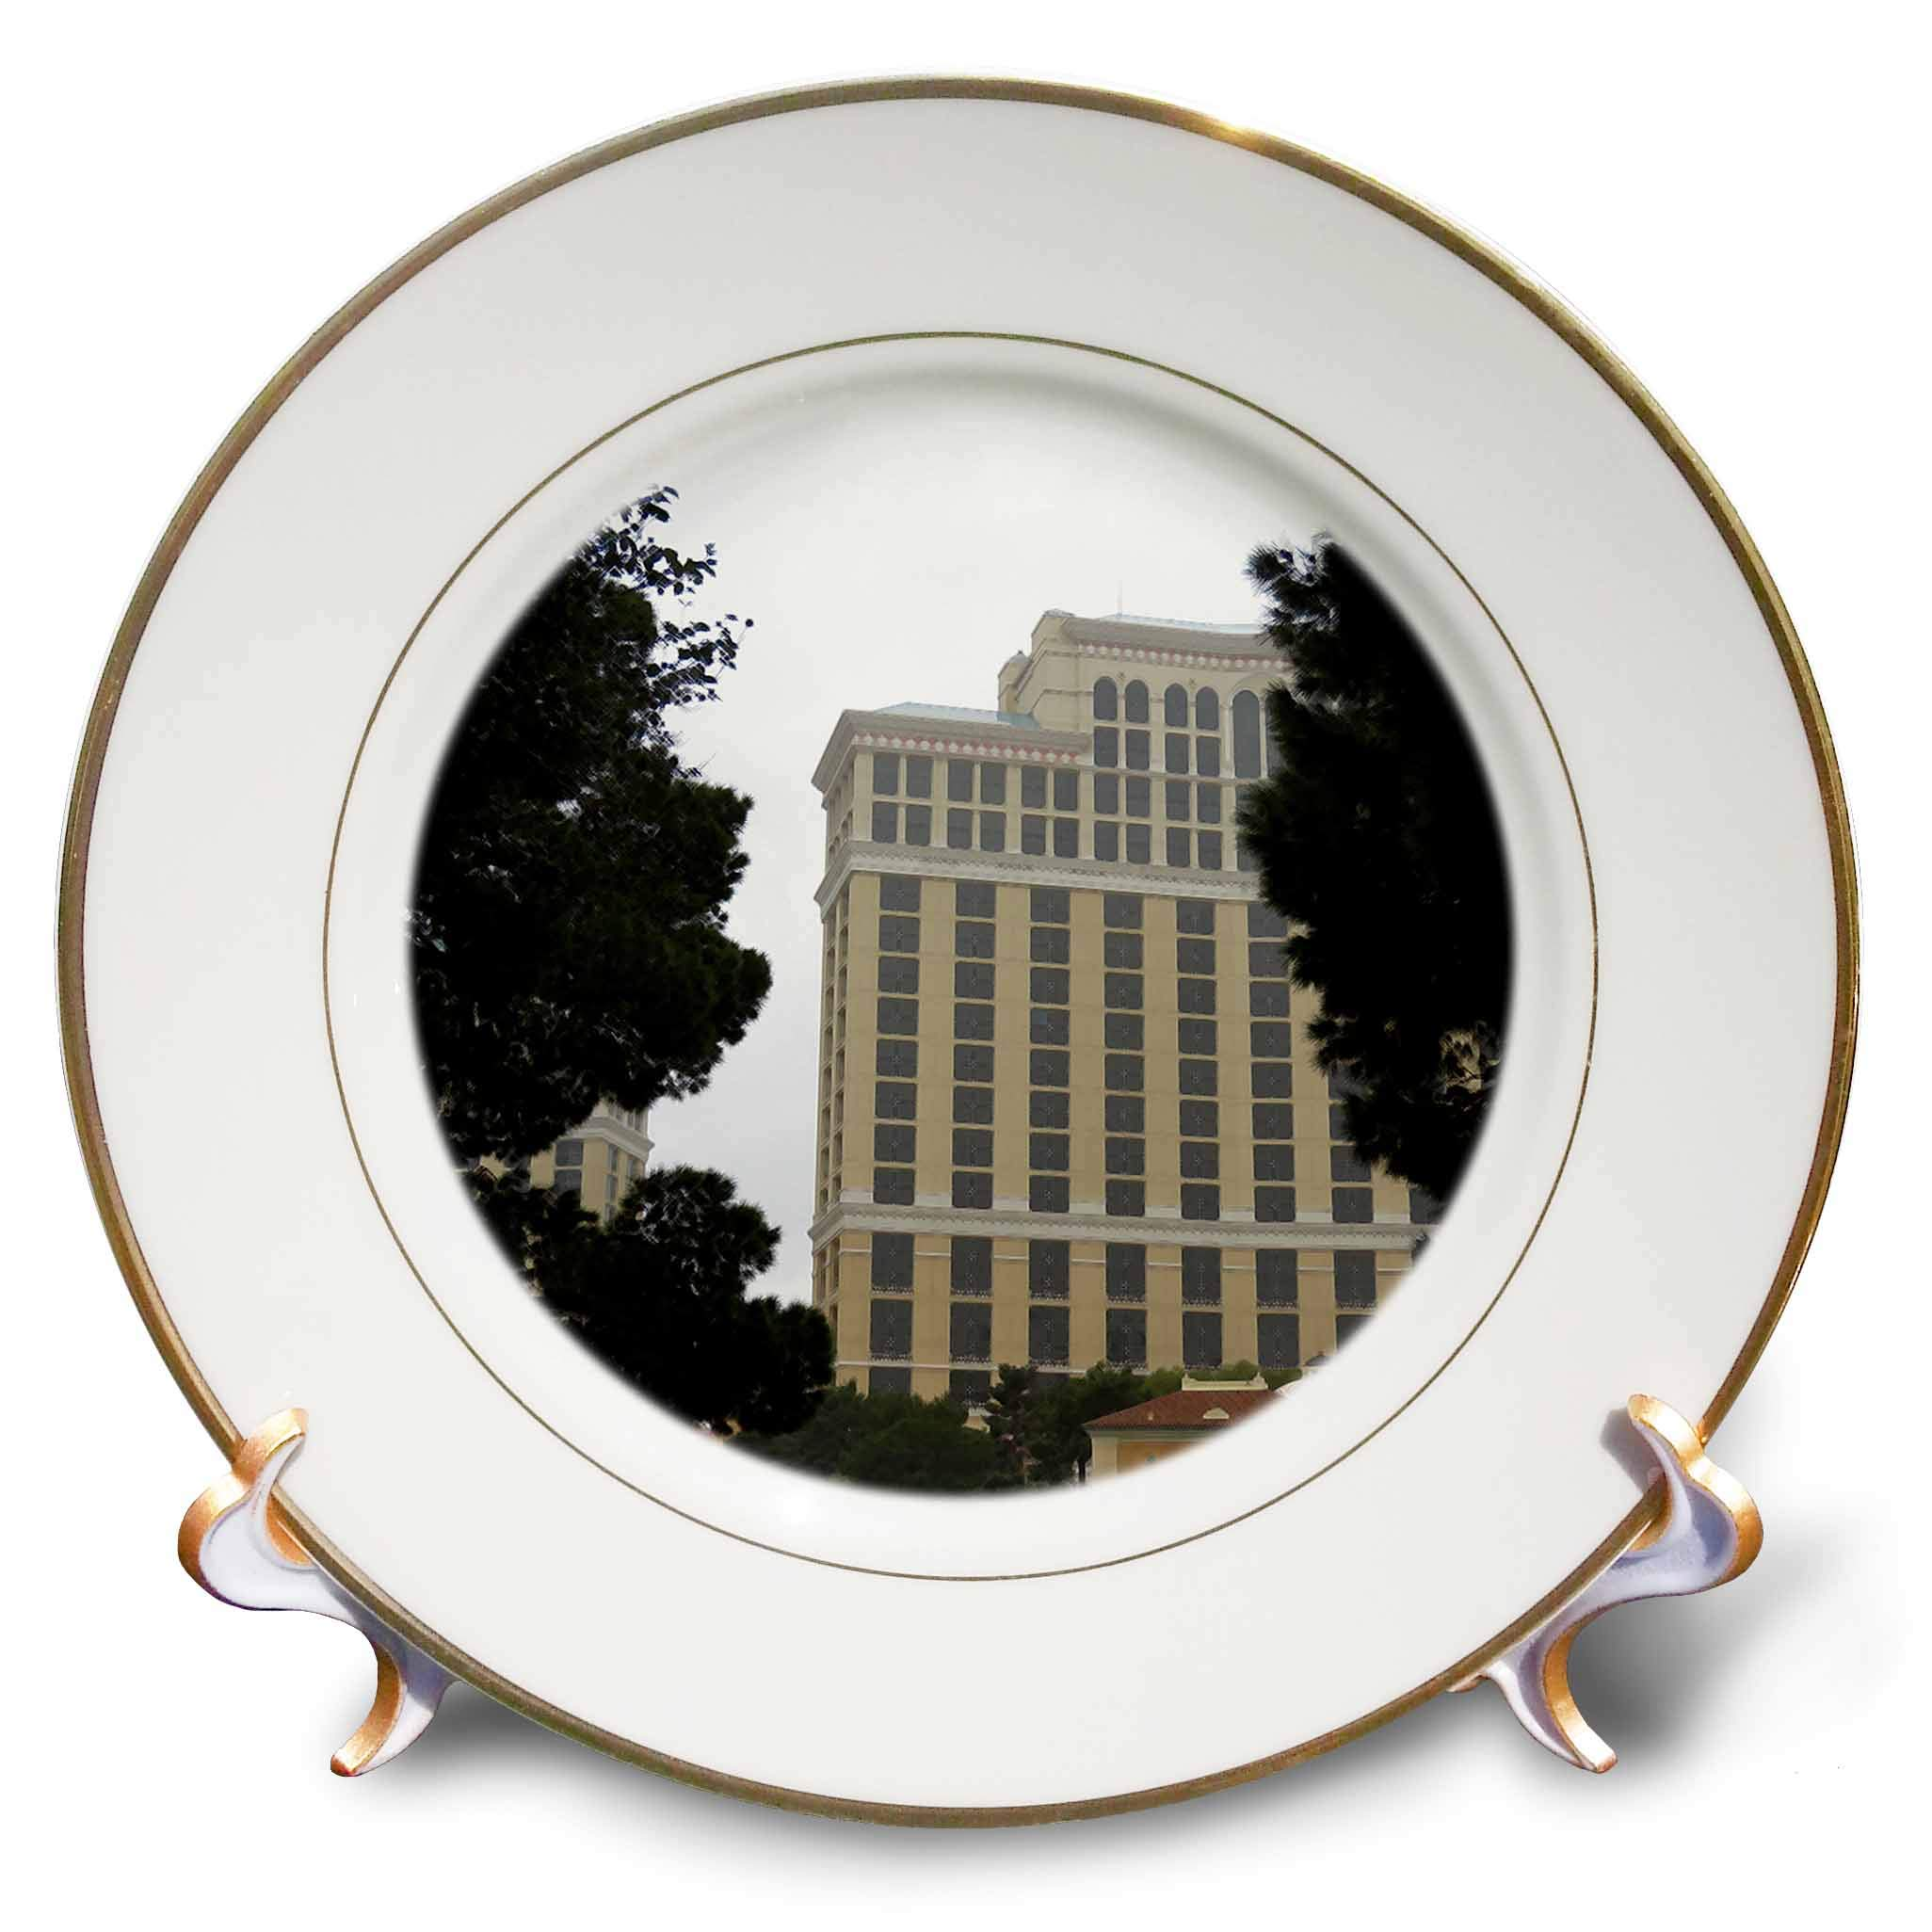 3dRose Jos Fauxtographee- Vegas Hotal with Trees - A Vegas Hotel That has Been Digitally Dry Brushed with Trees - 8 inch Porcelain Plate (cp_291087_1)